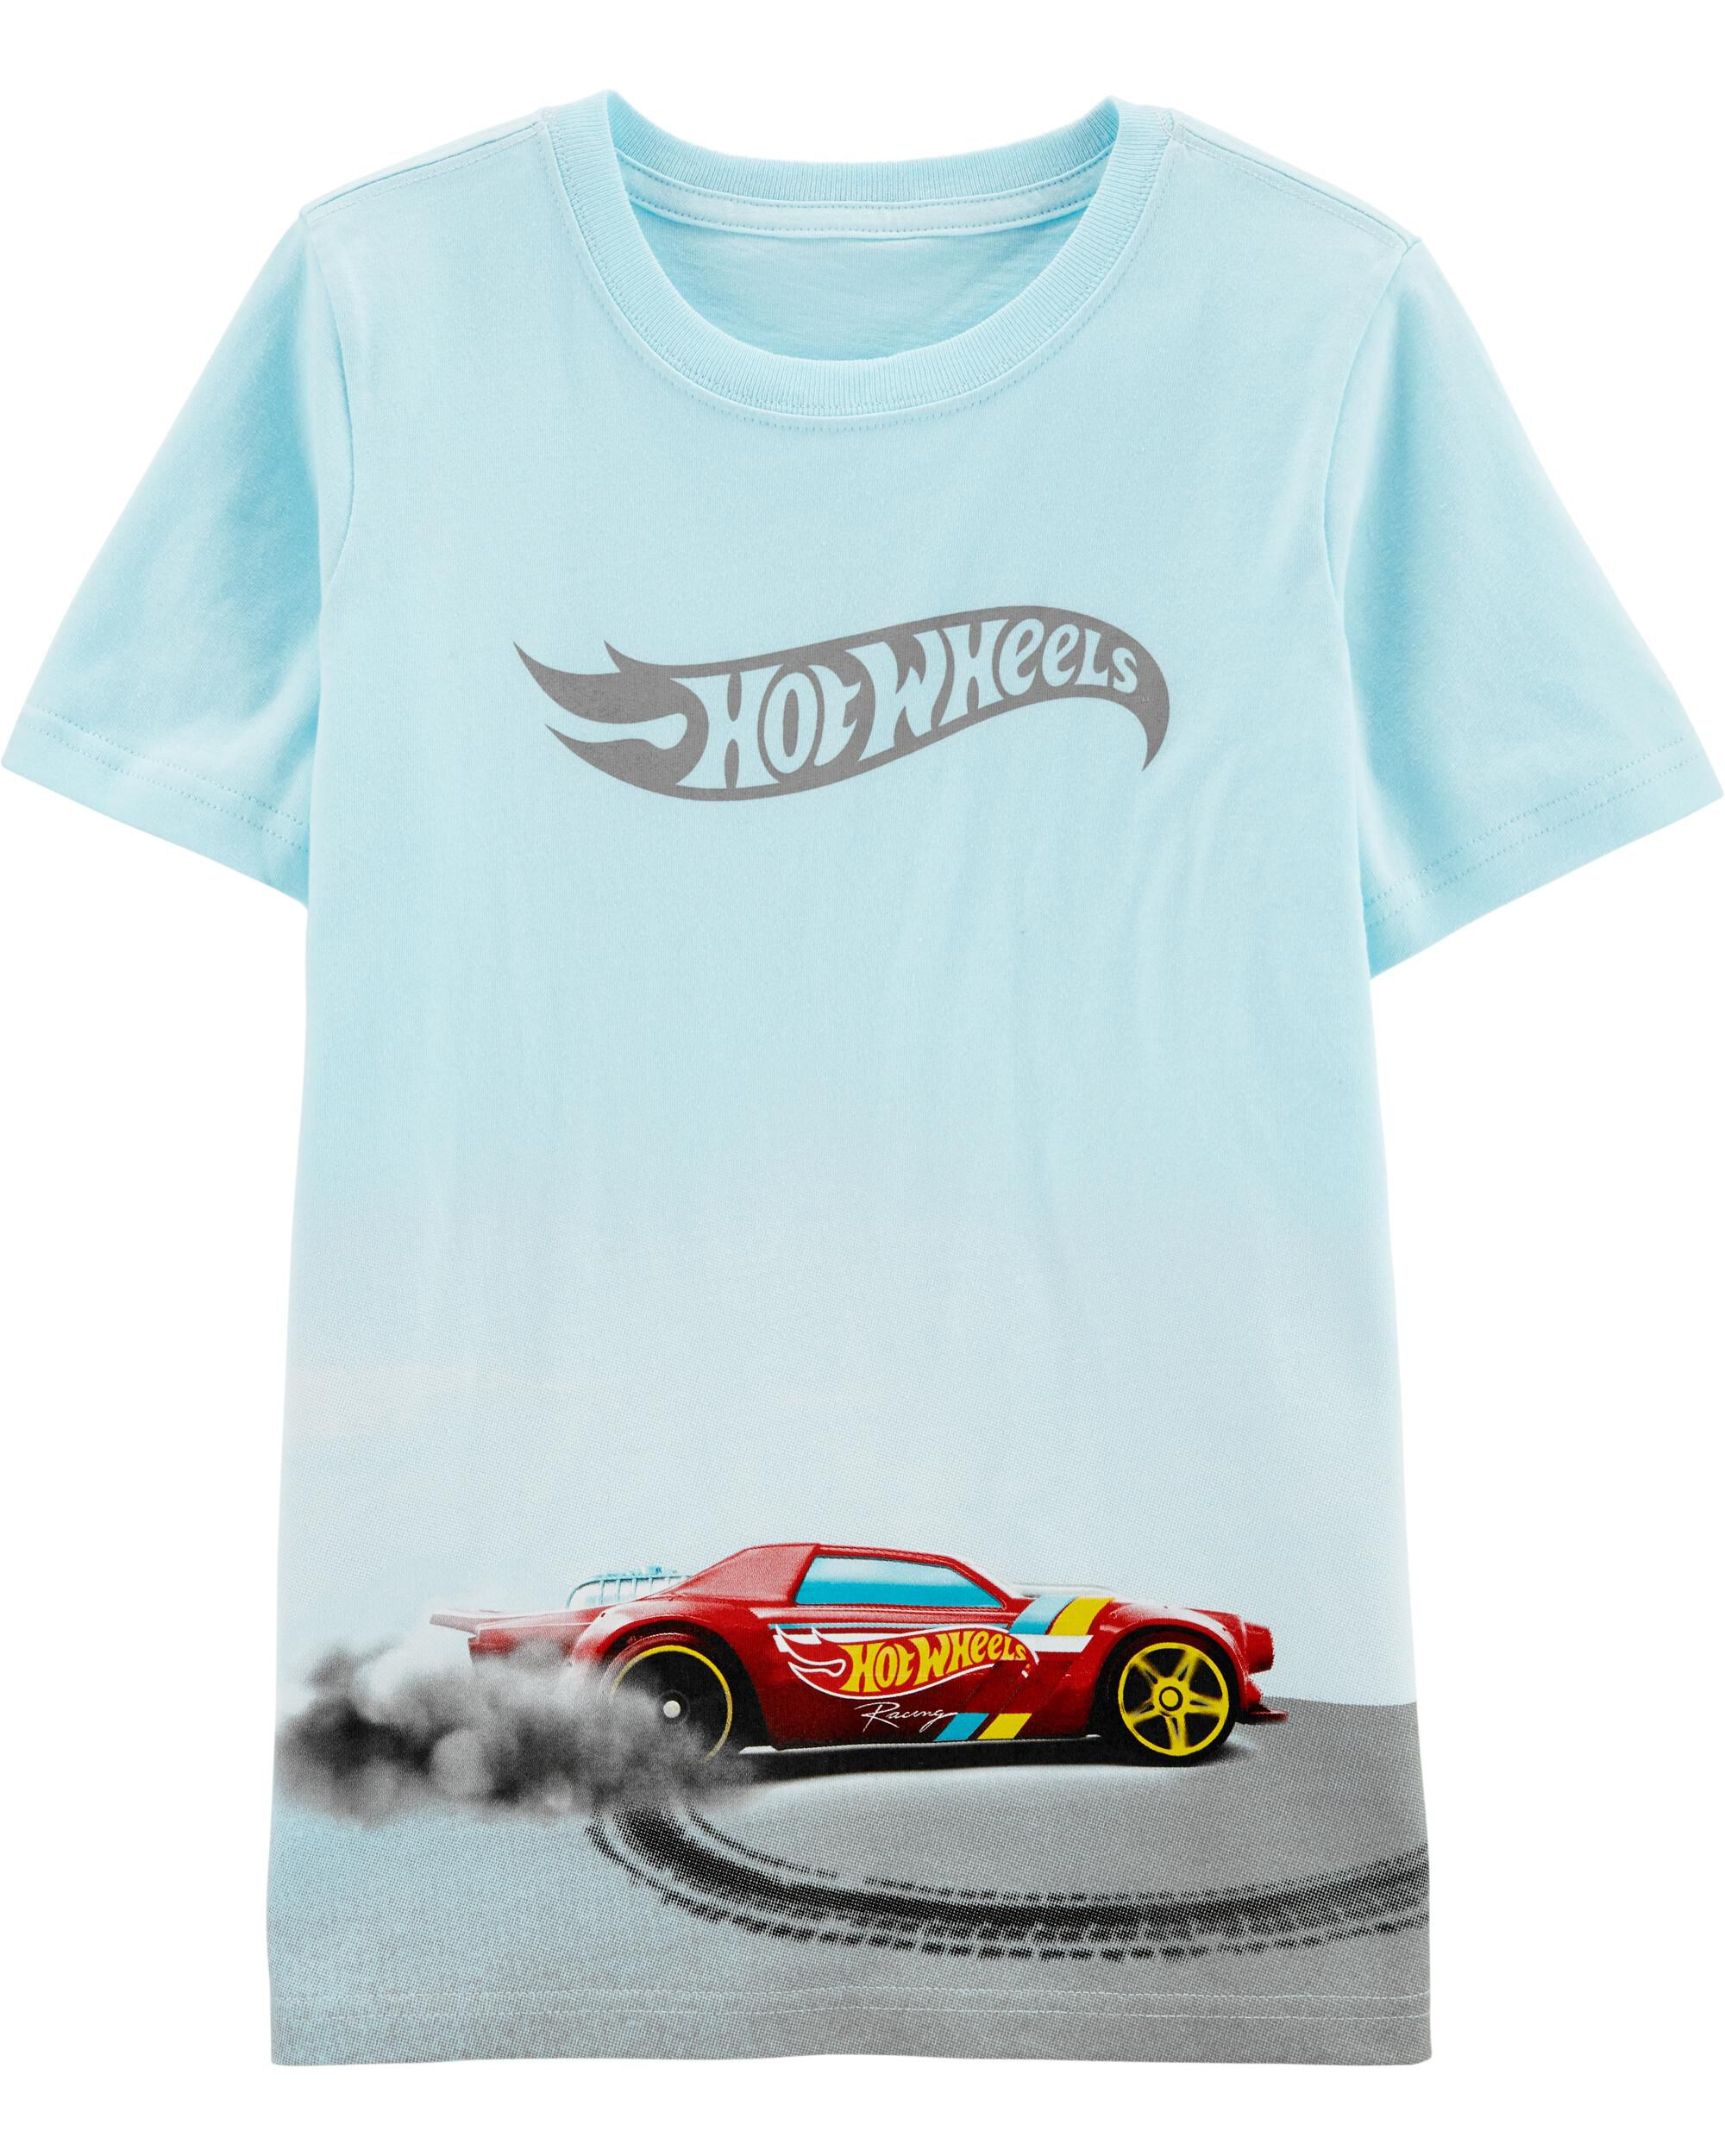 *DOORBUSTER* Hot Wheels TM Tee